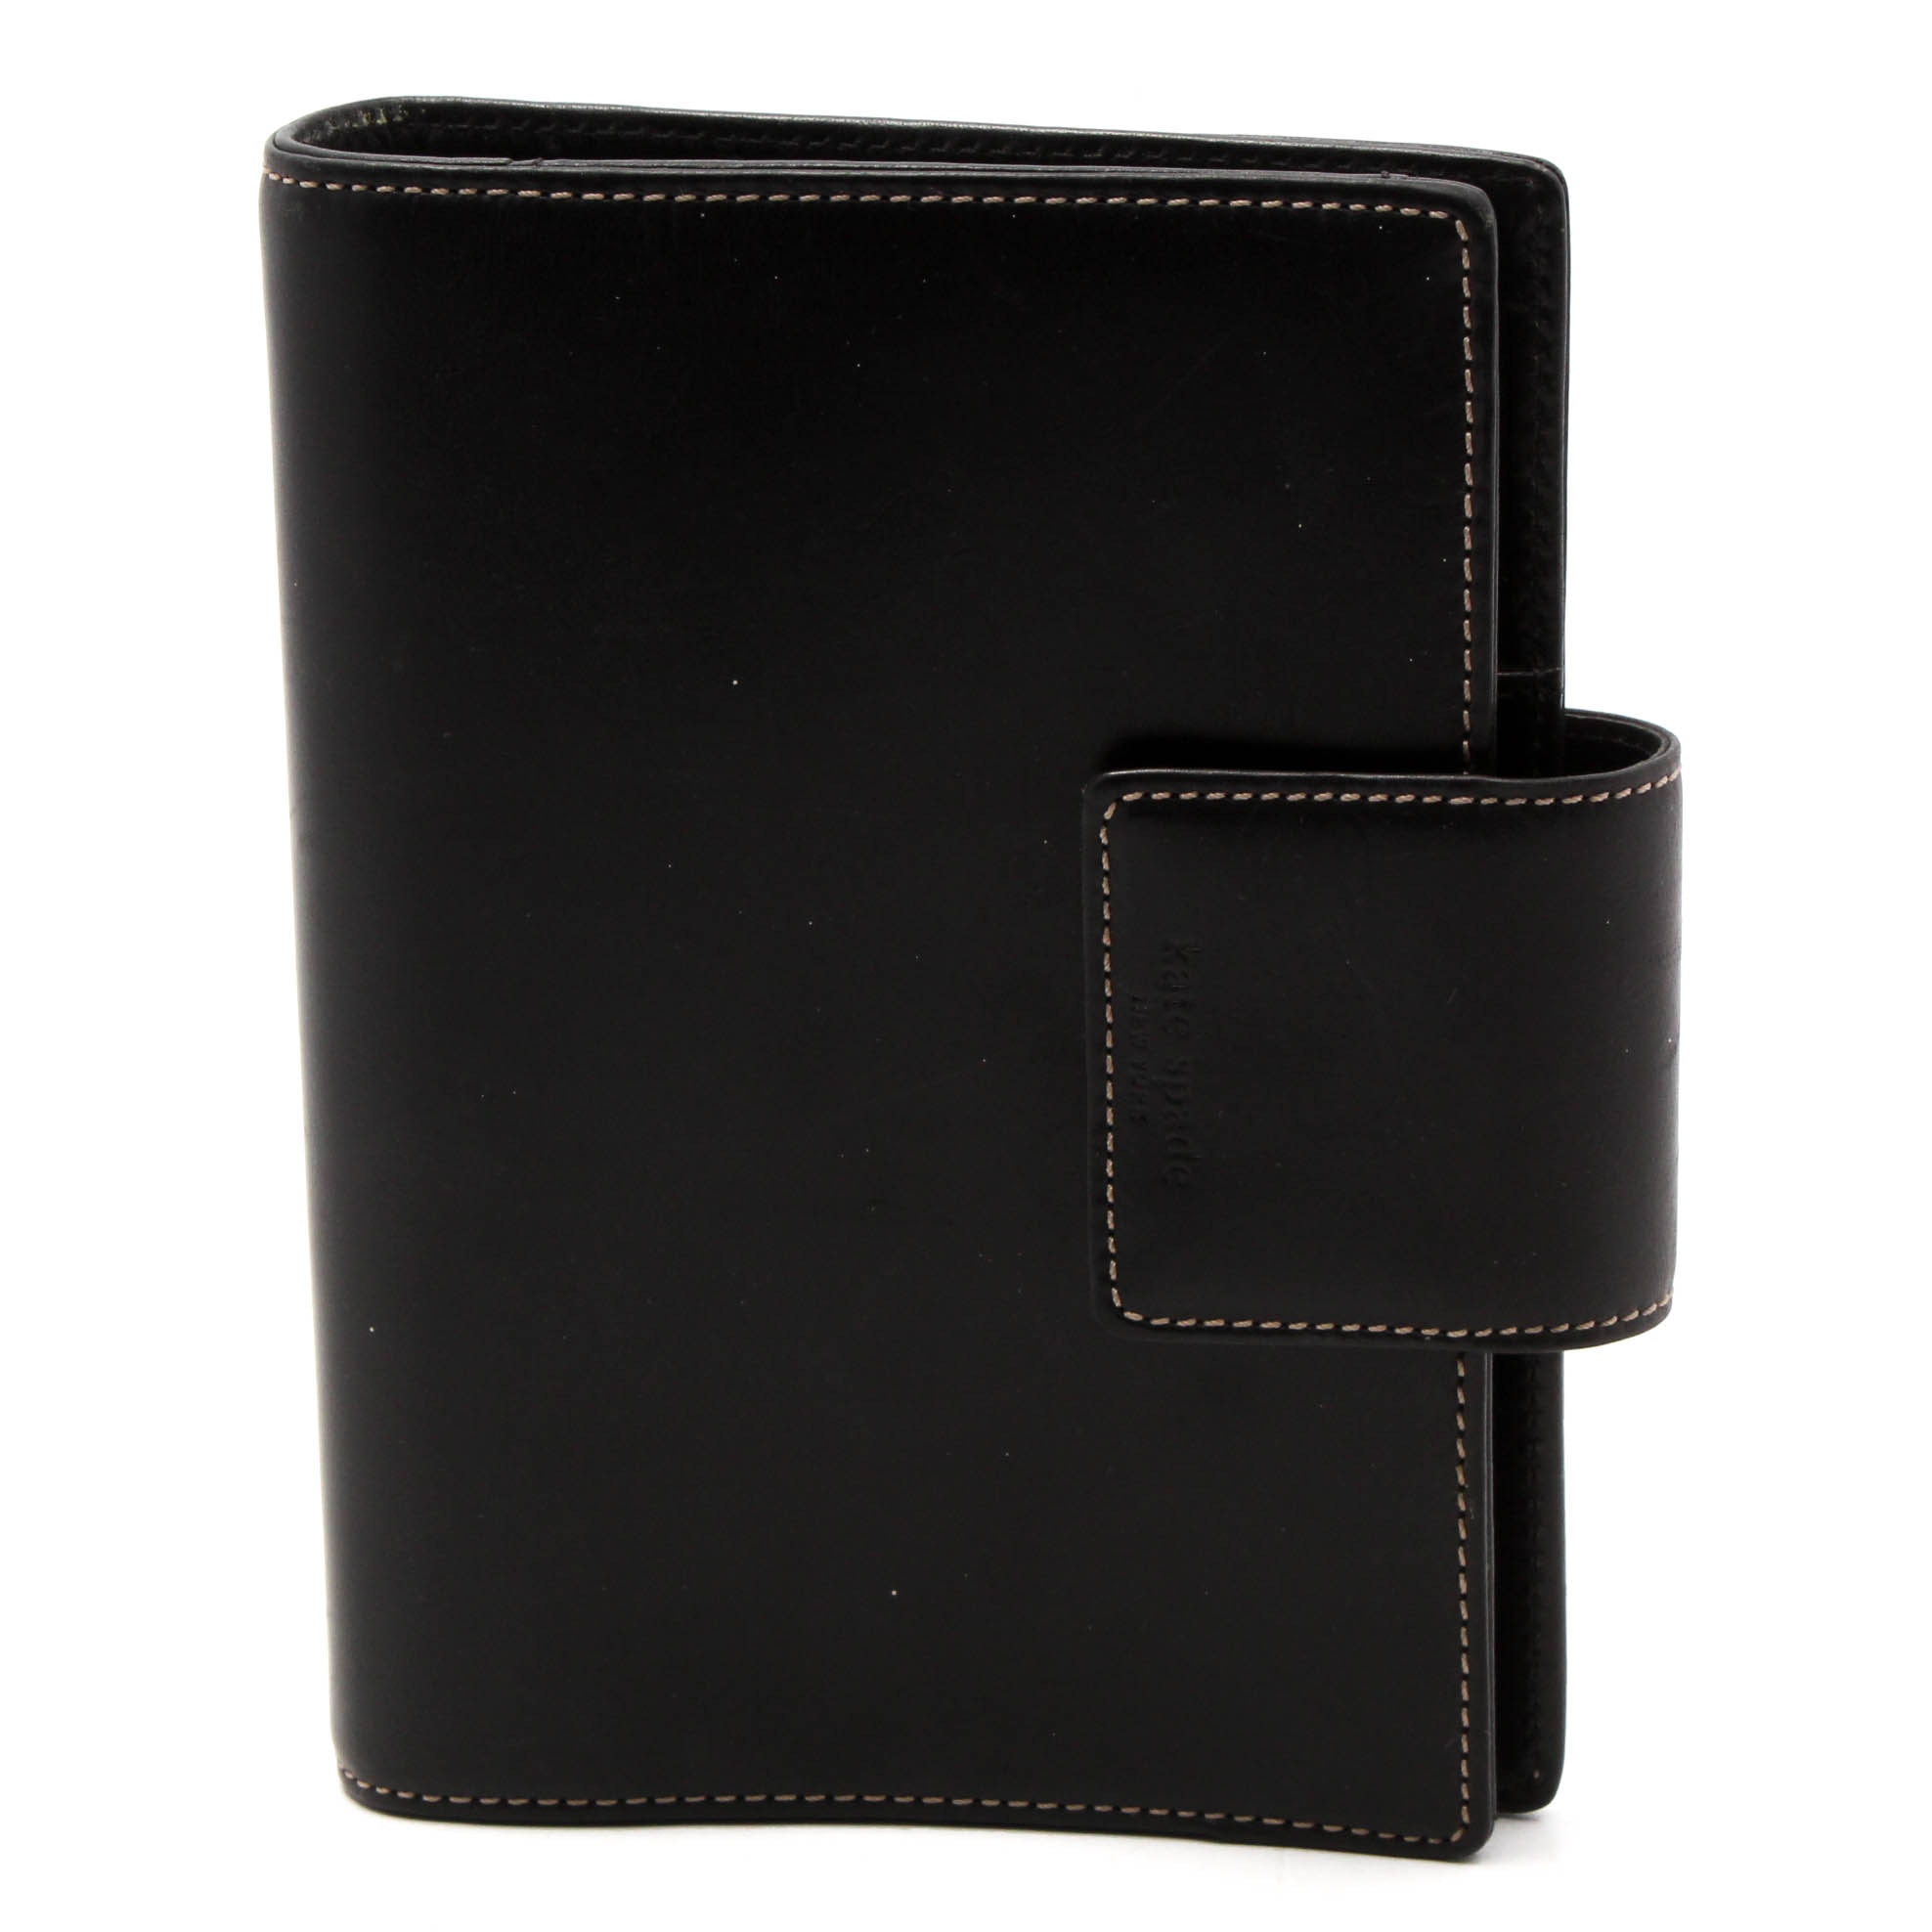 Kate Spade New York Black Leather Planner Cover